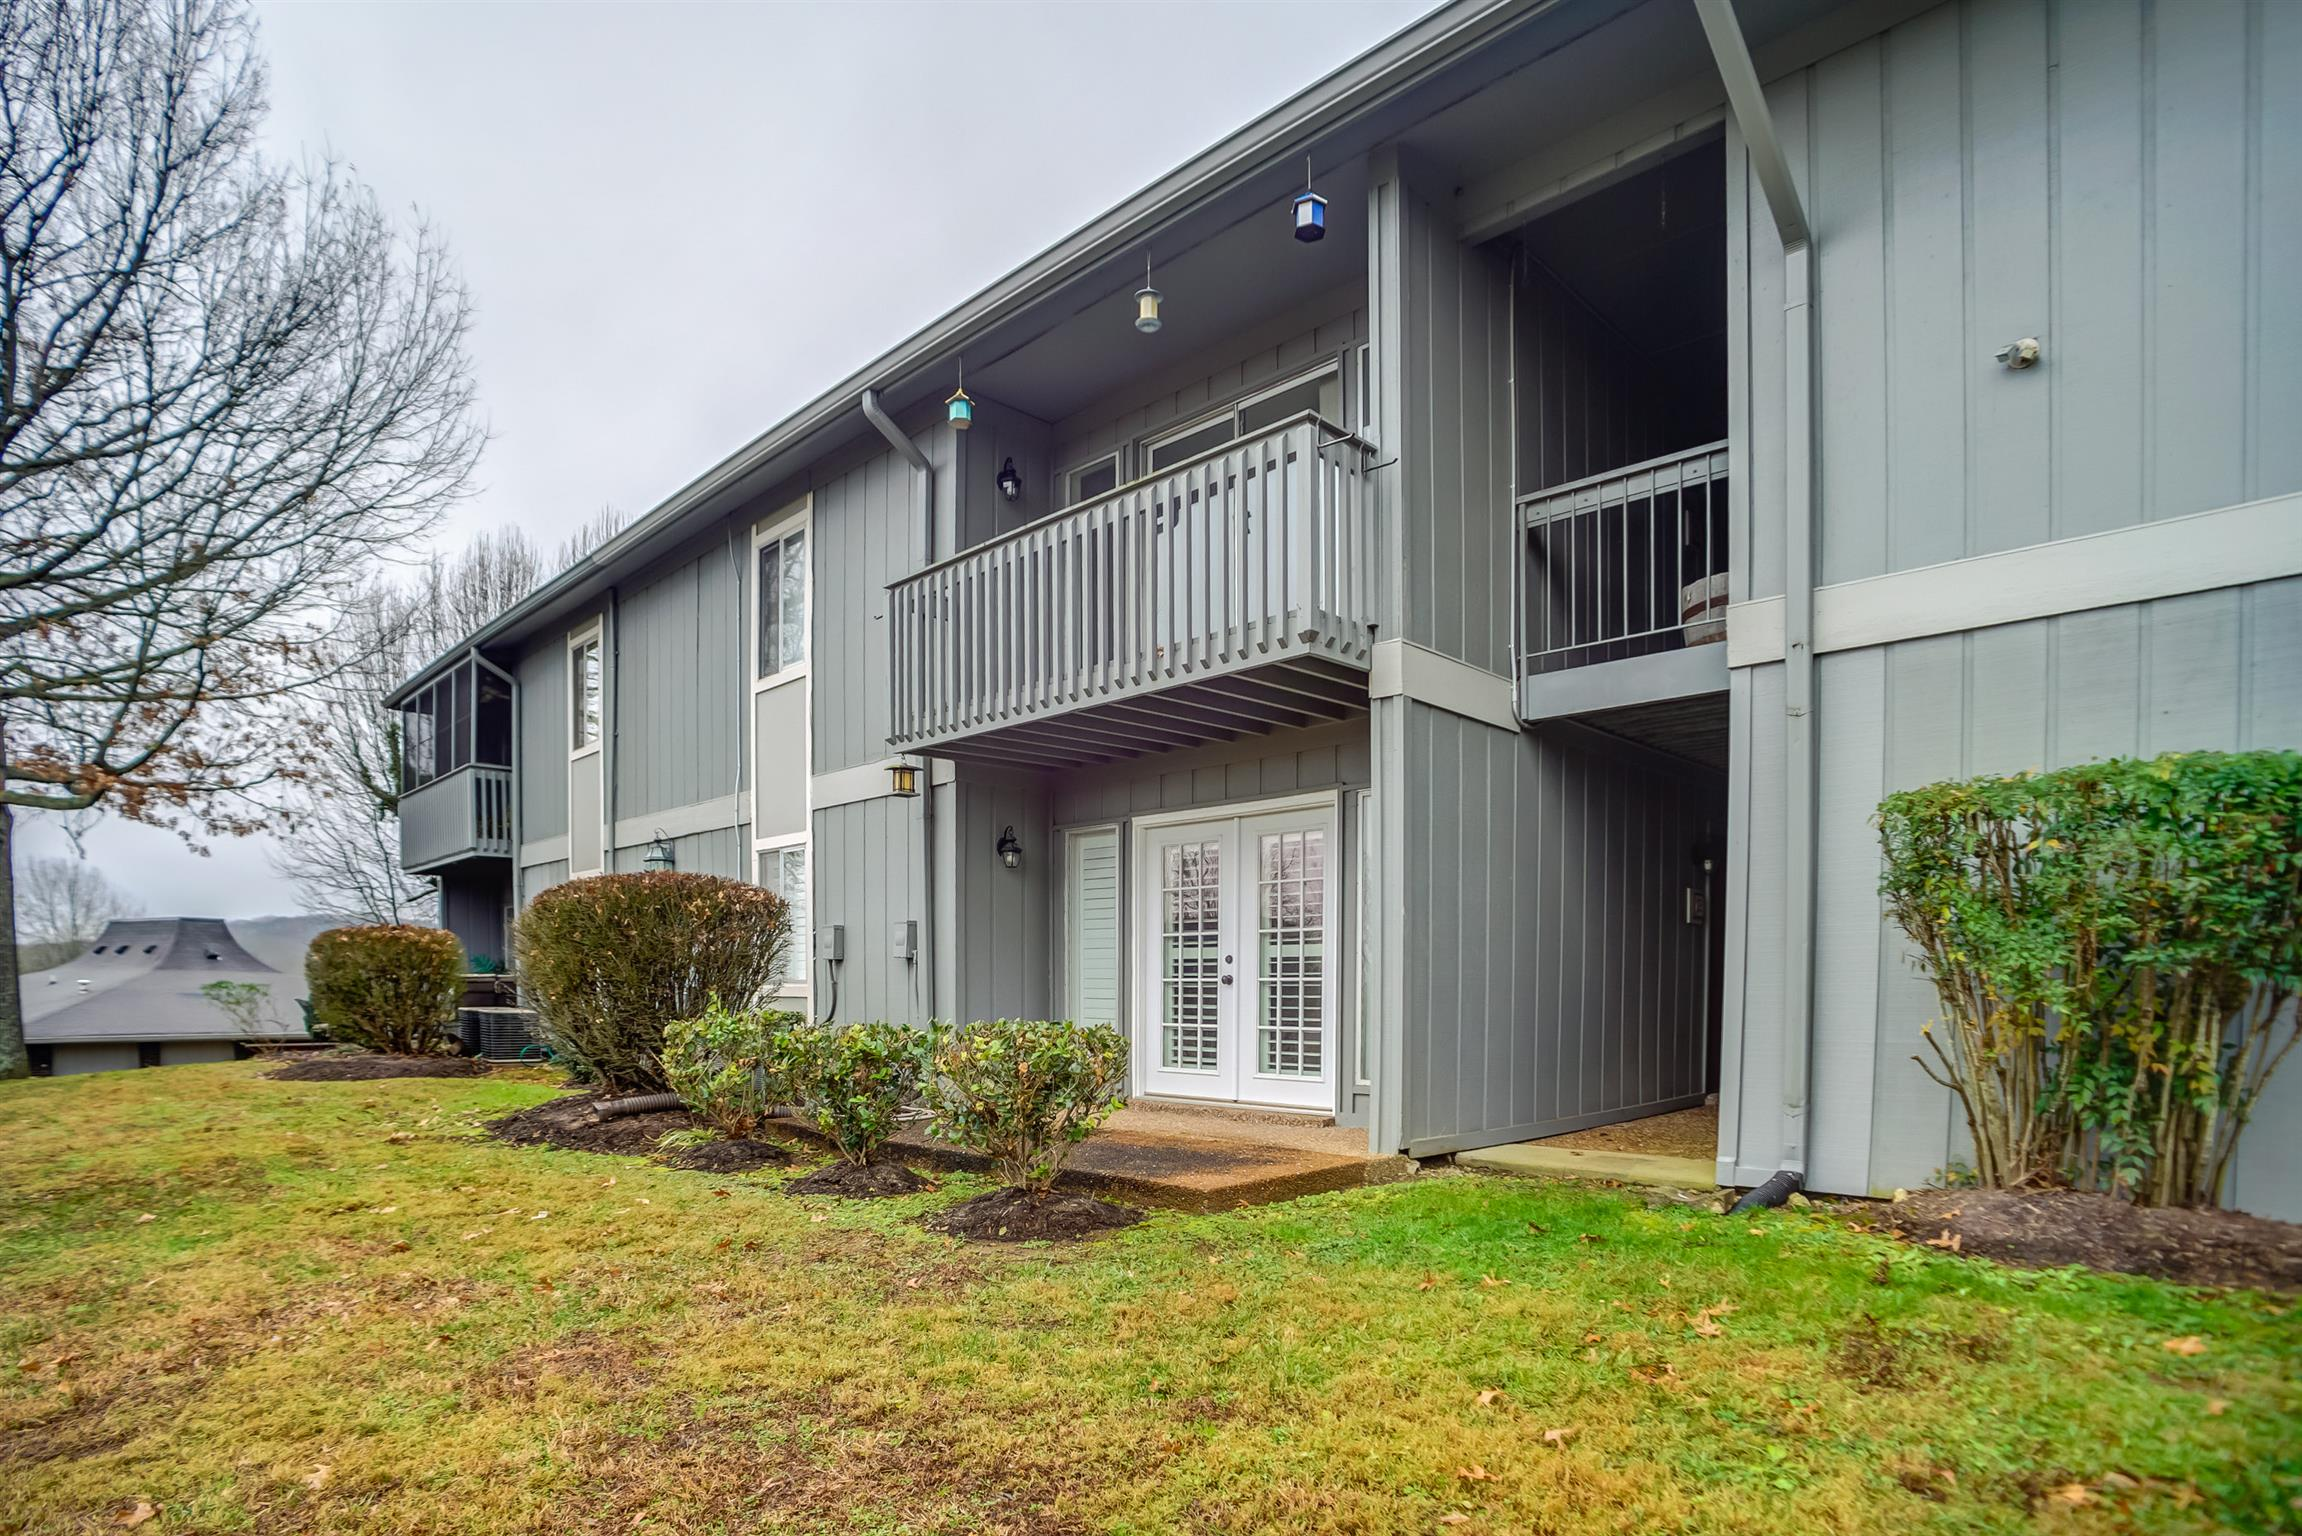 21 Vaughns Gap Rd Apt 132, Belle Meade in Davidson County County, TN 37205 Home for Sale